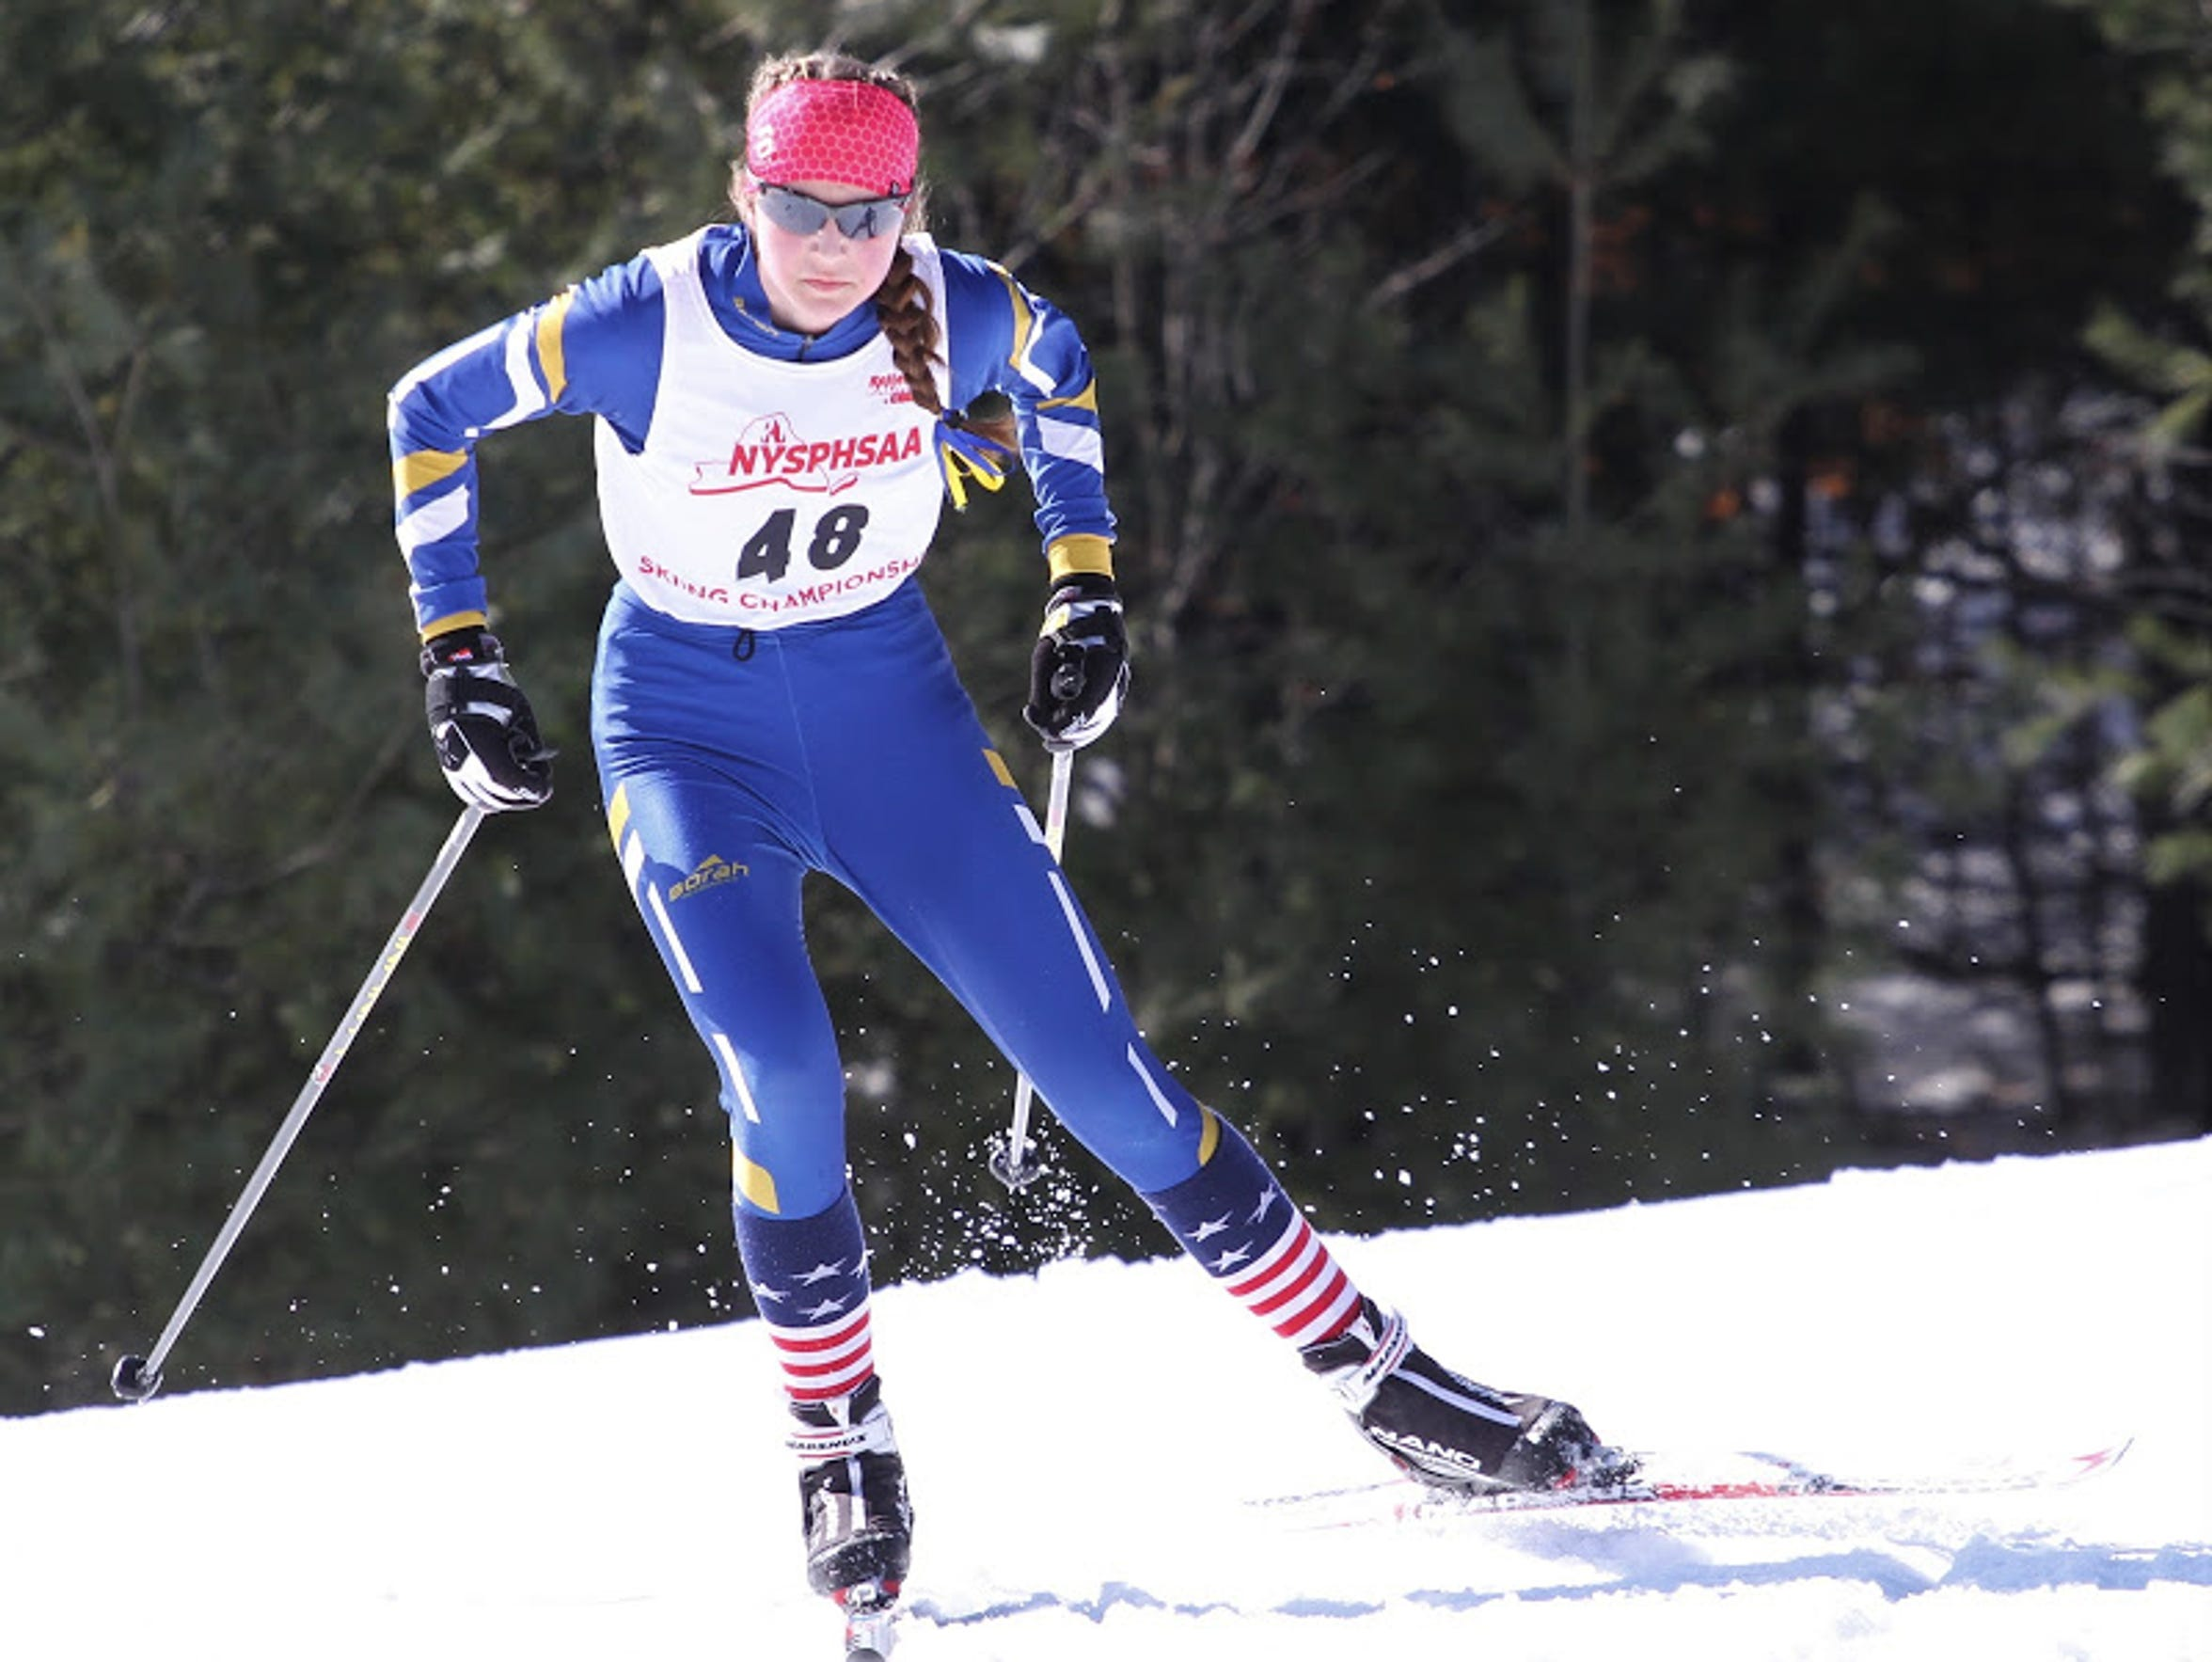 Grace Mattern of Brighton at the state Nordic skiing